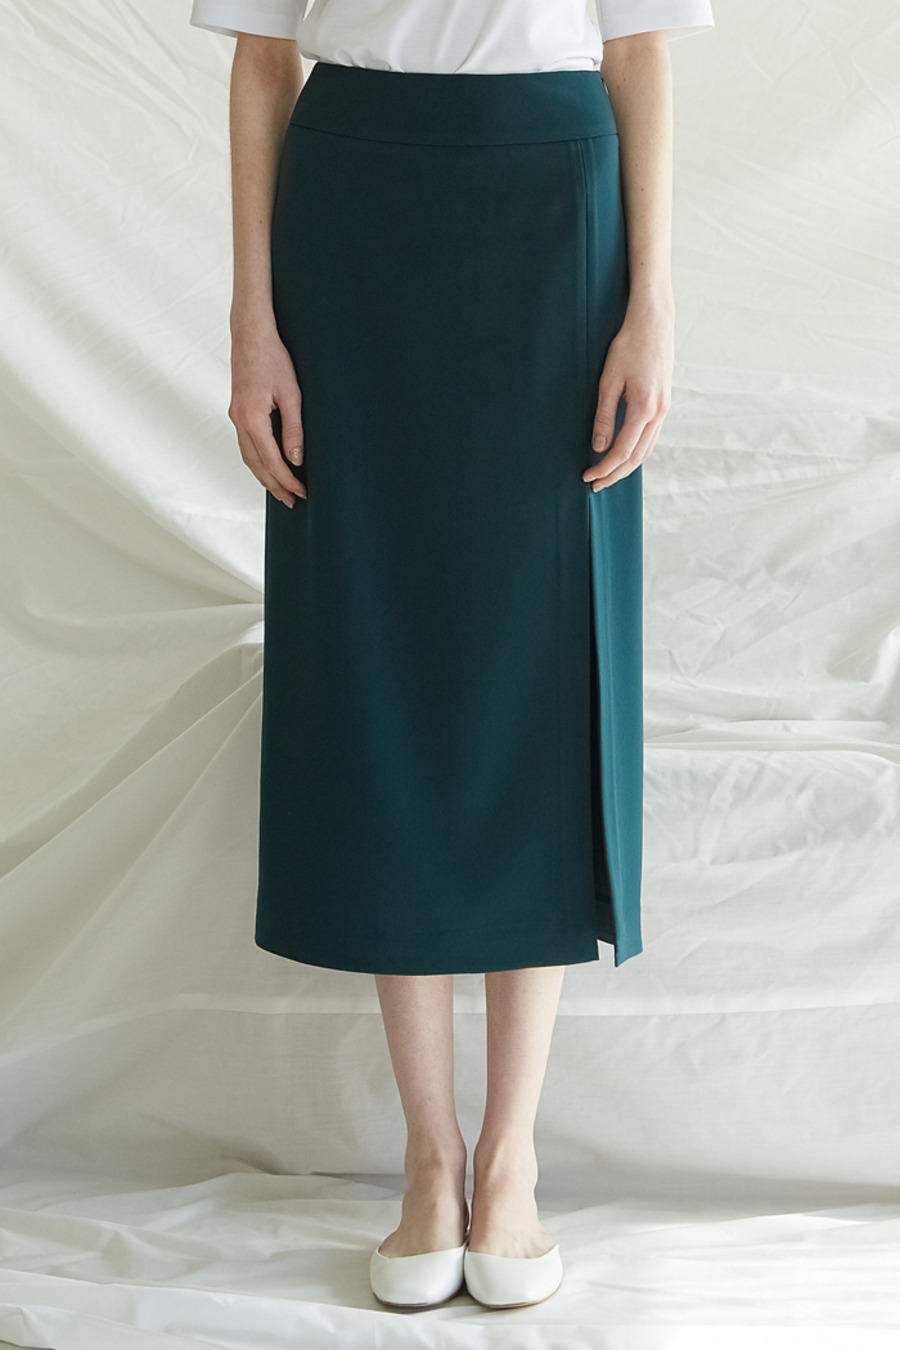 SLIT LONG SKIRT - GREEN